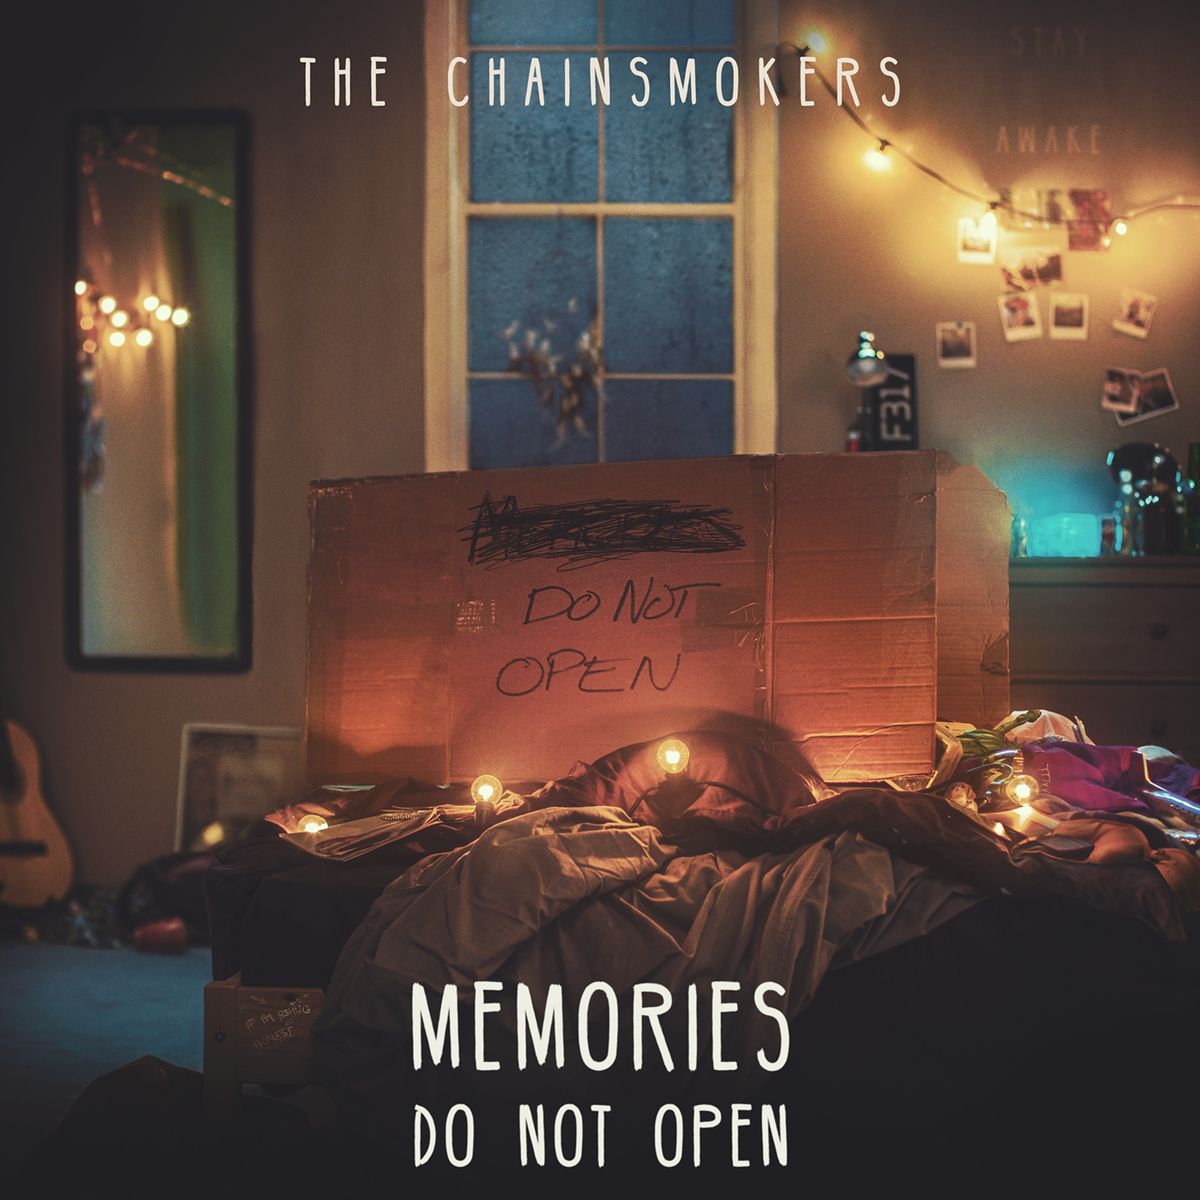 The Chainsmokers ‎– Memories... Do Not Open [Disruptor Records][88985428432](2017)